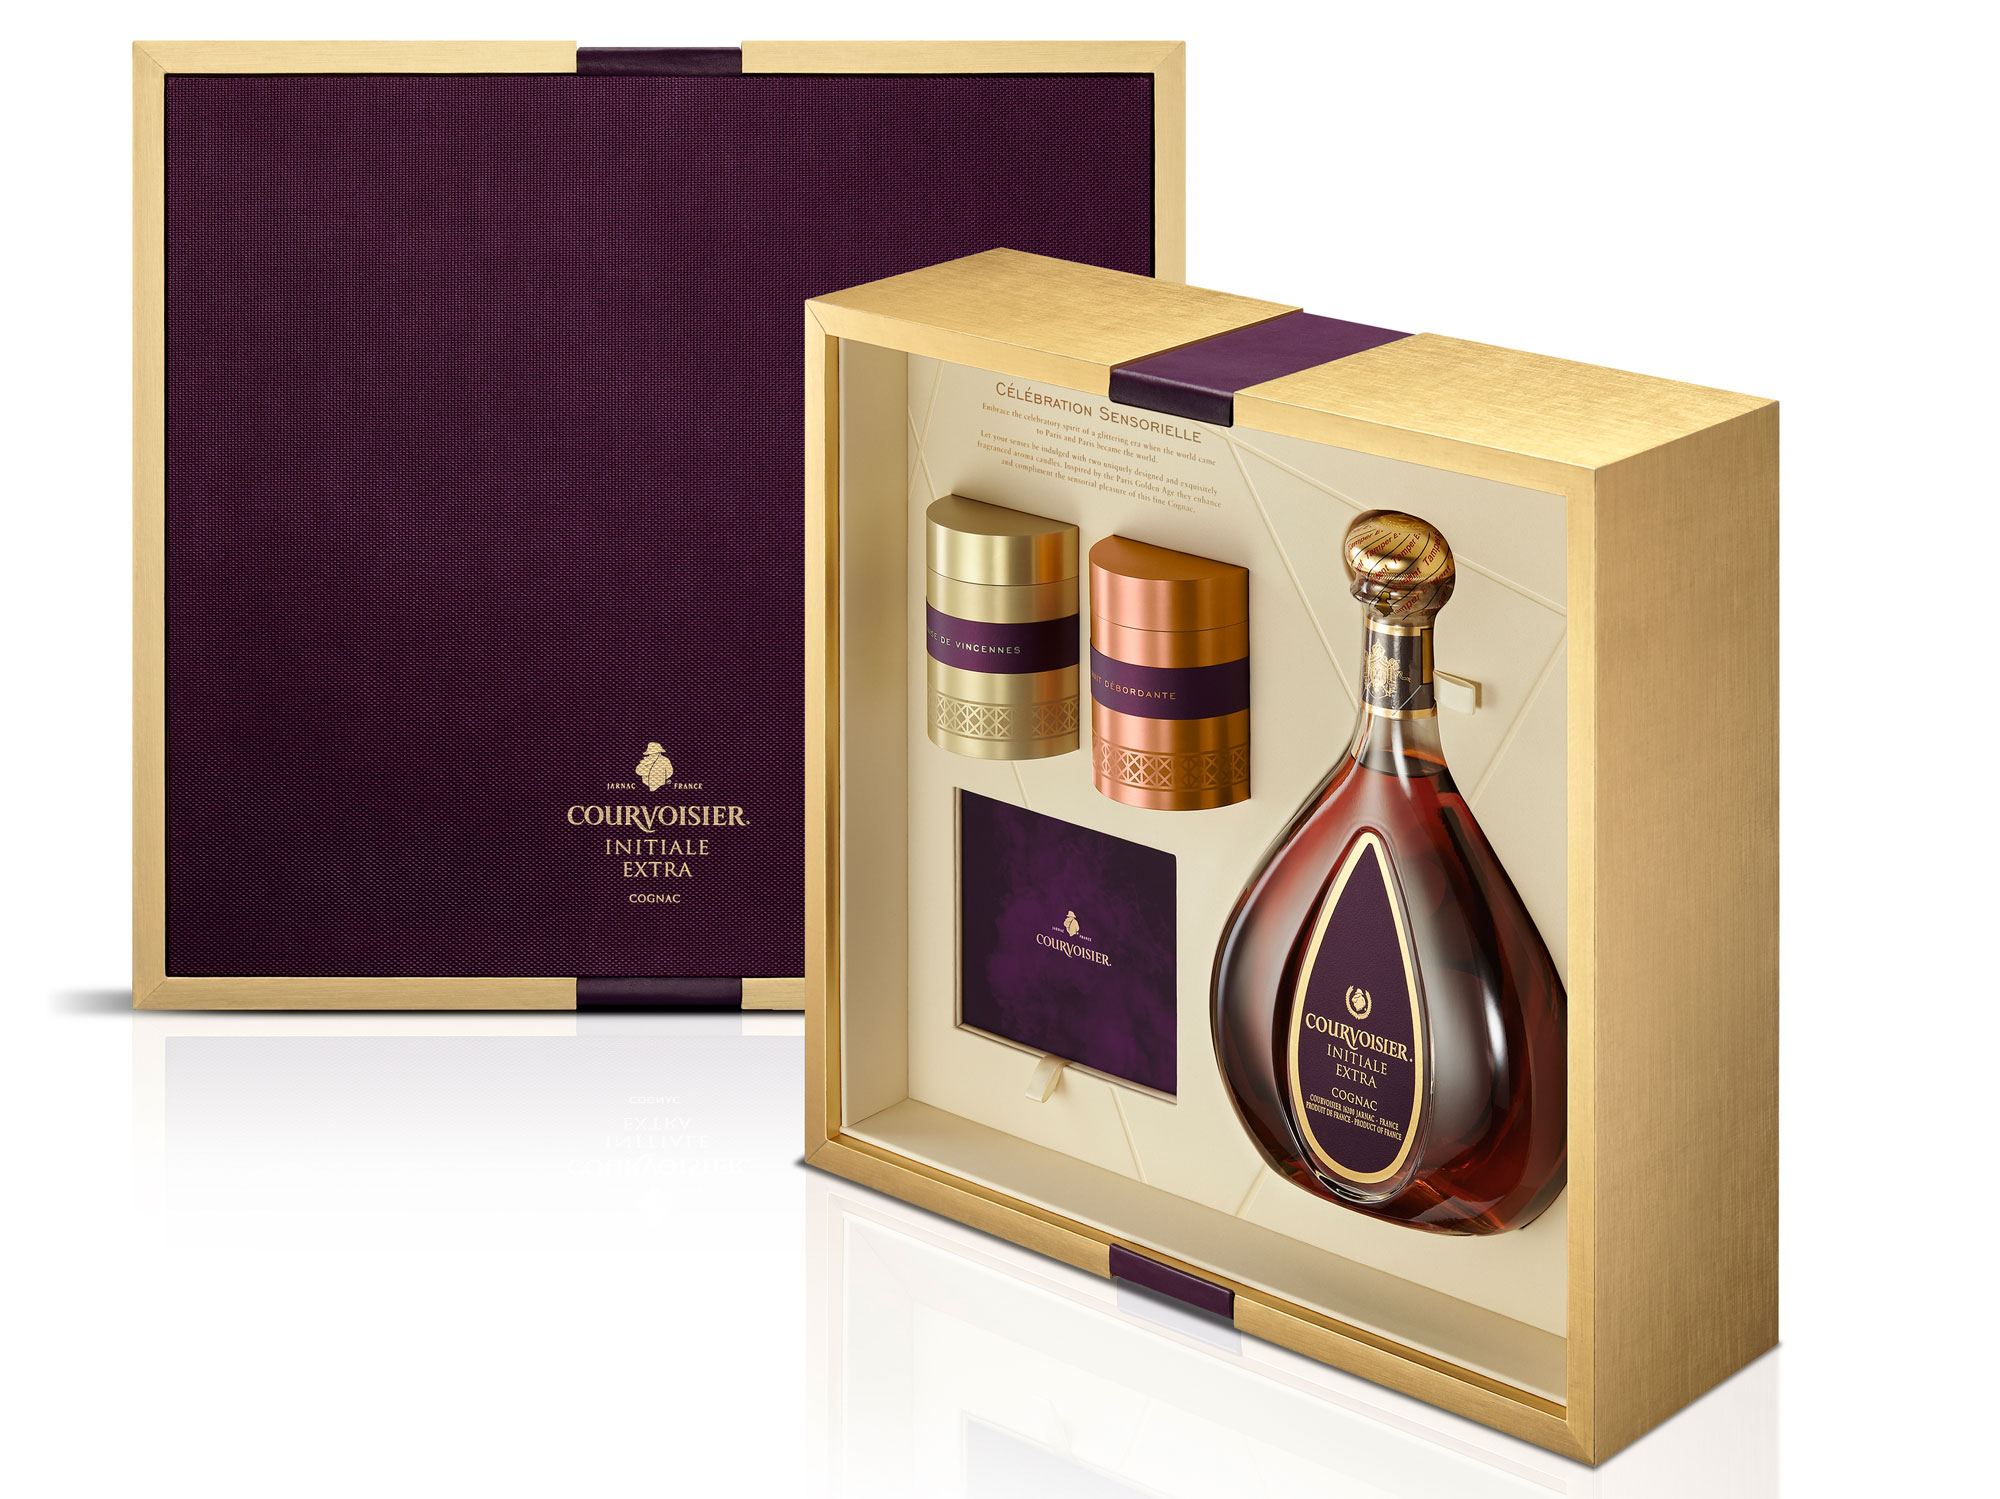 Courvoisier's Celebration Sensorielle